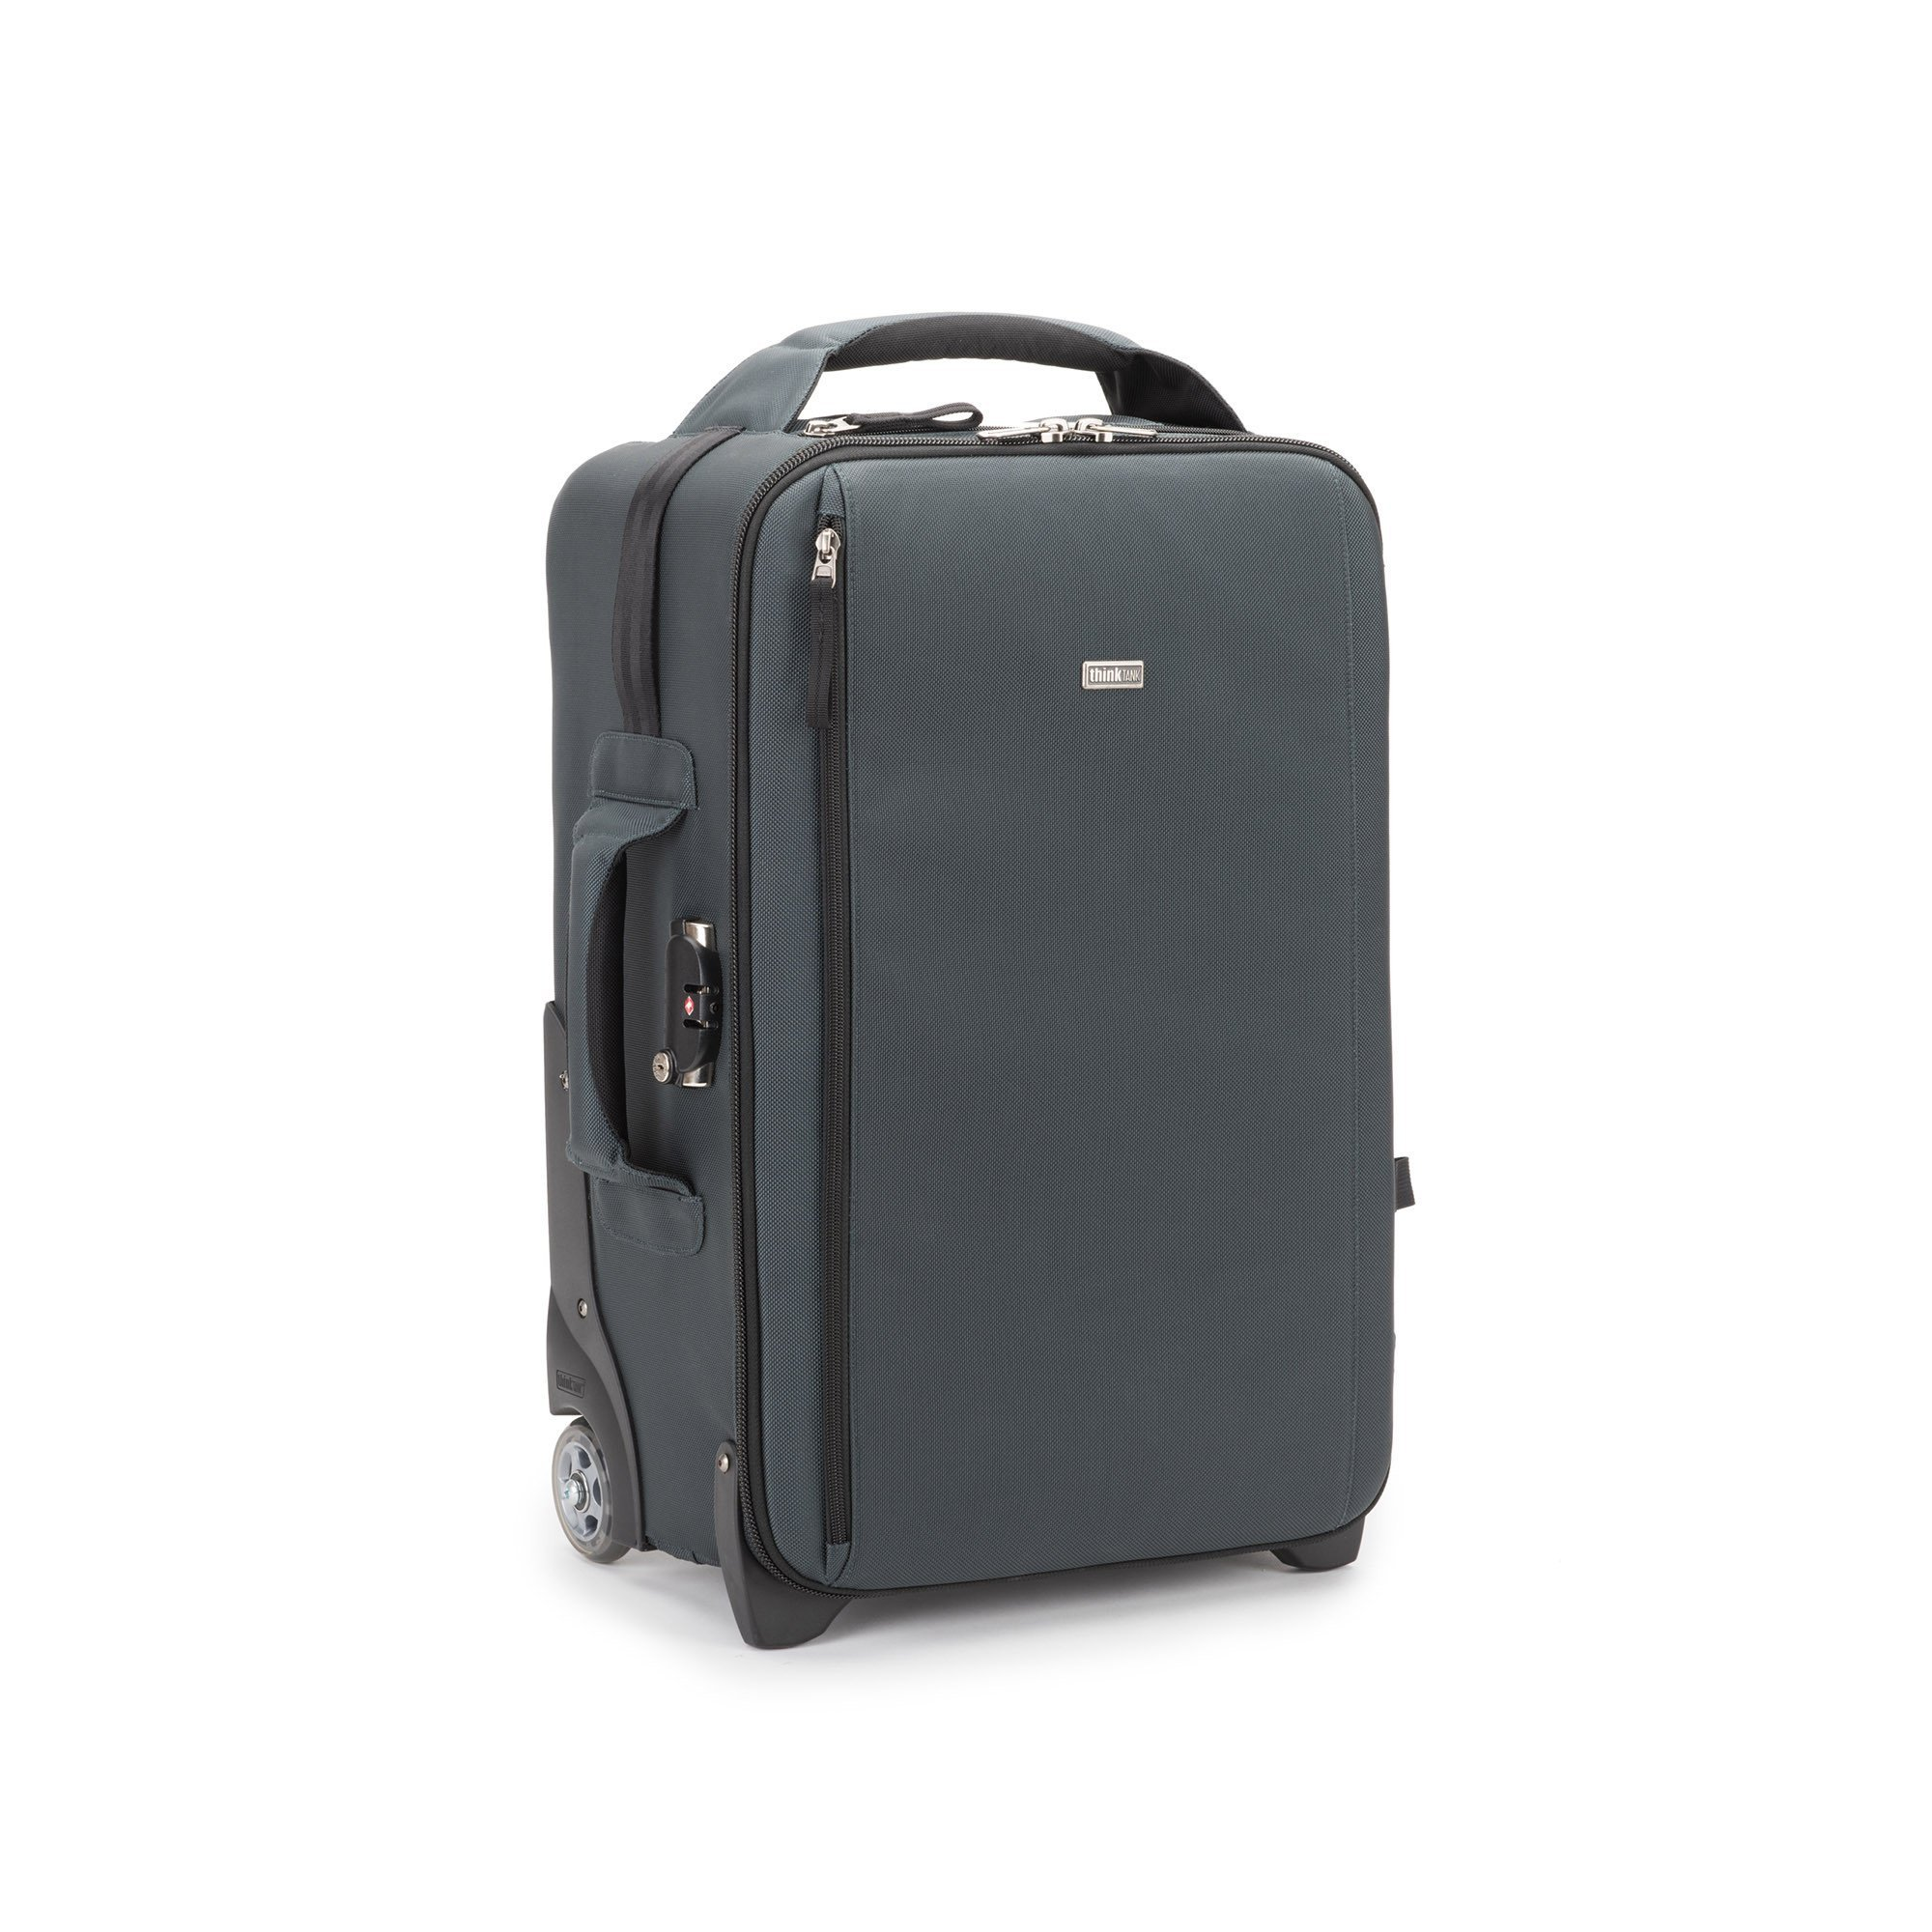 Think Tank Photo Video Transport 20 Carry-On Case (Pacific Slate) by Think Tank (Image #1)